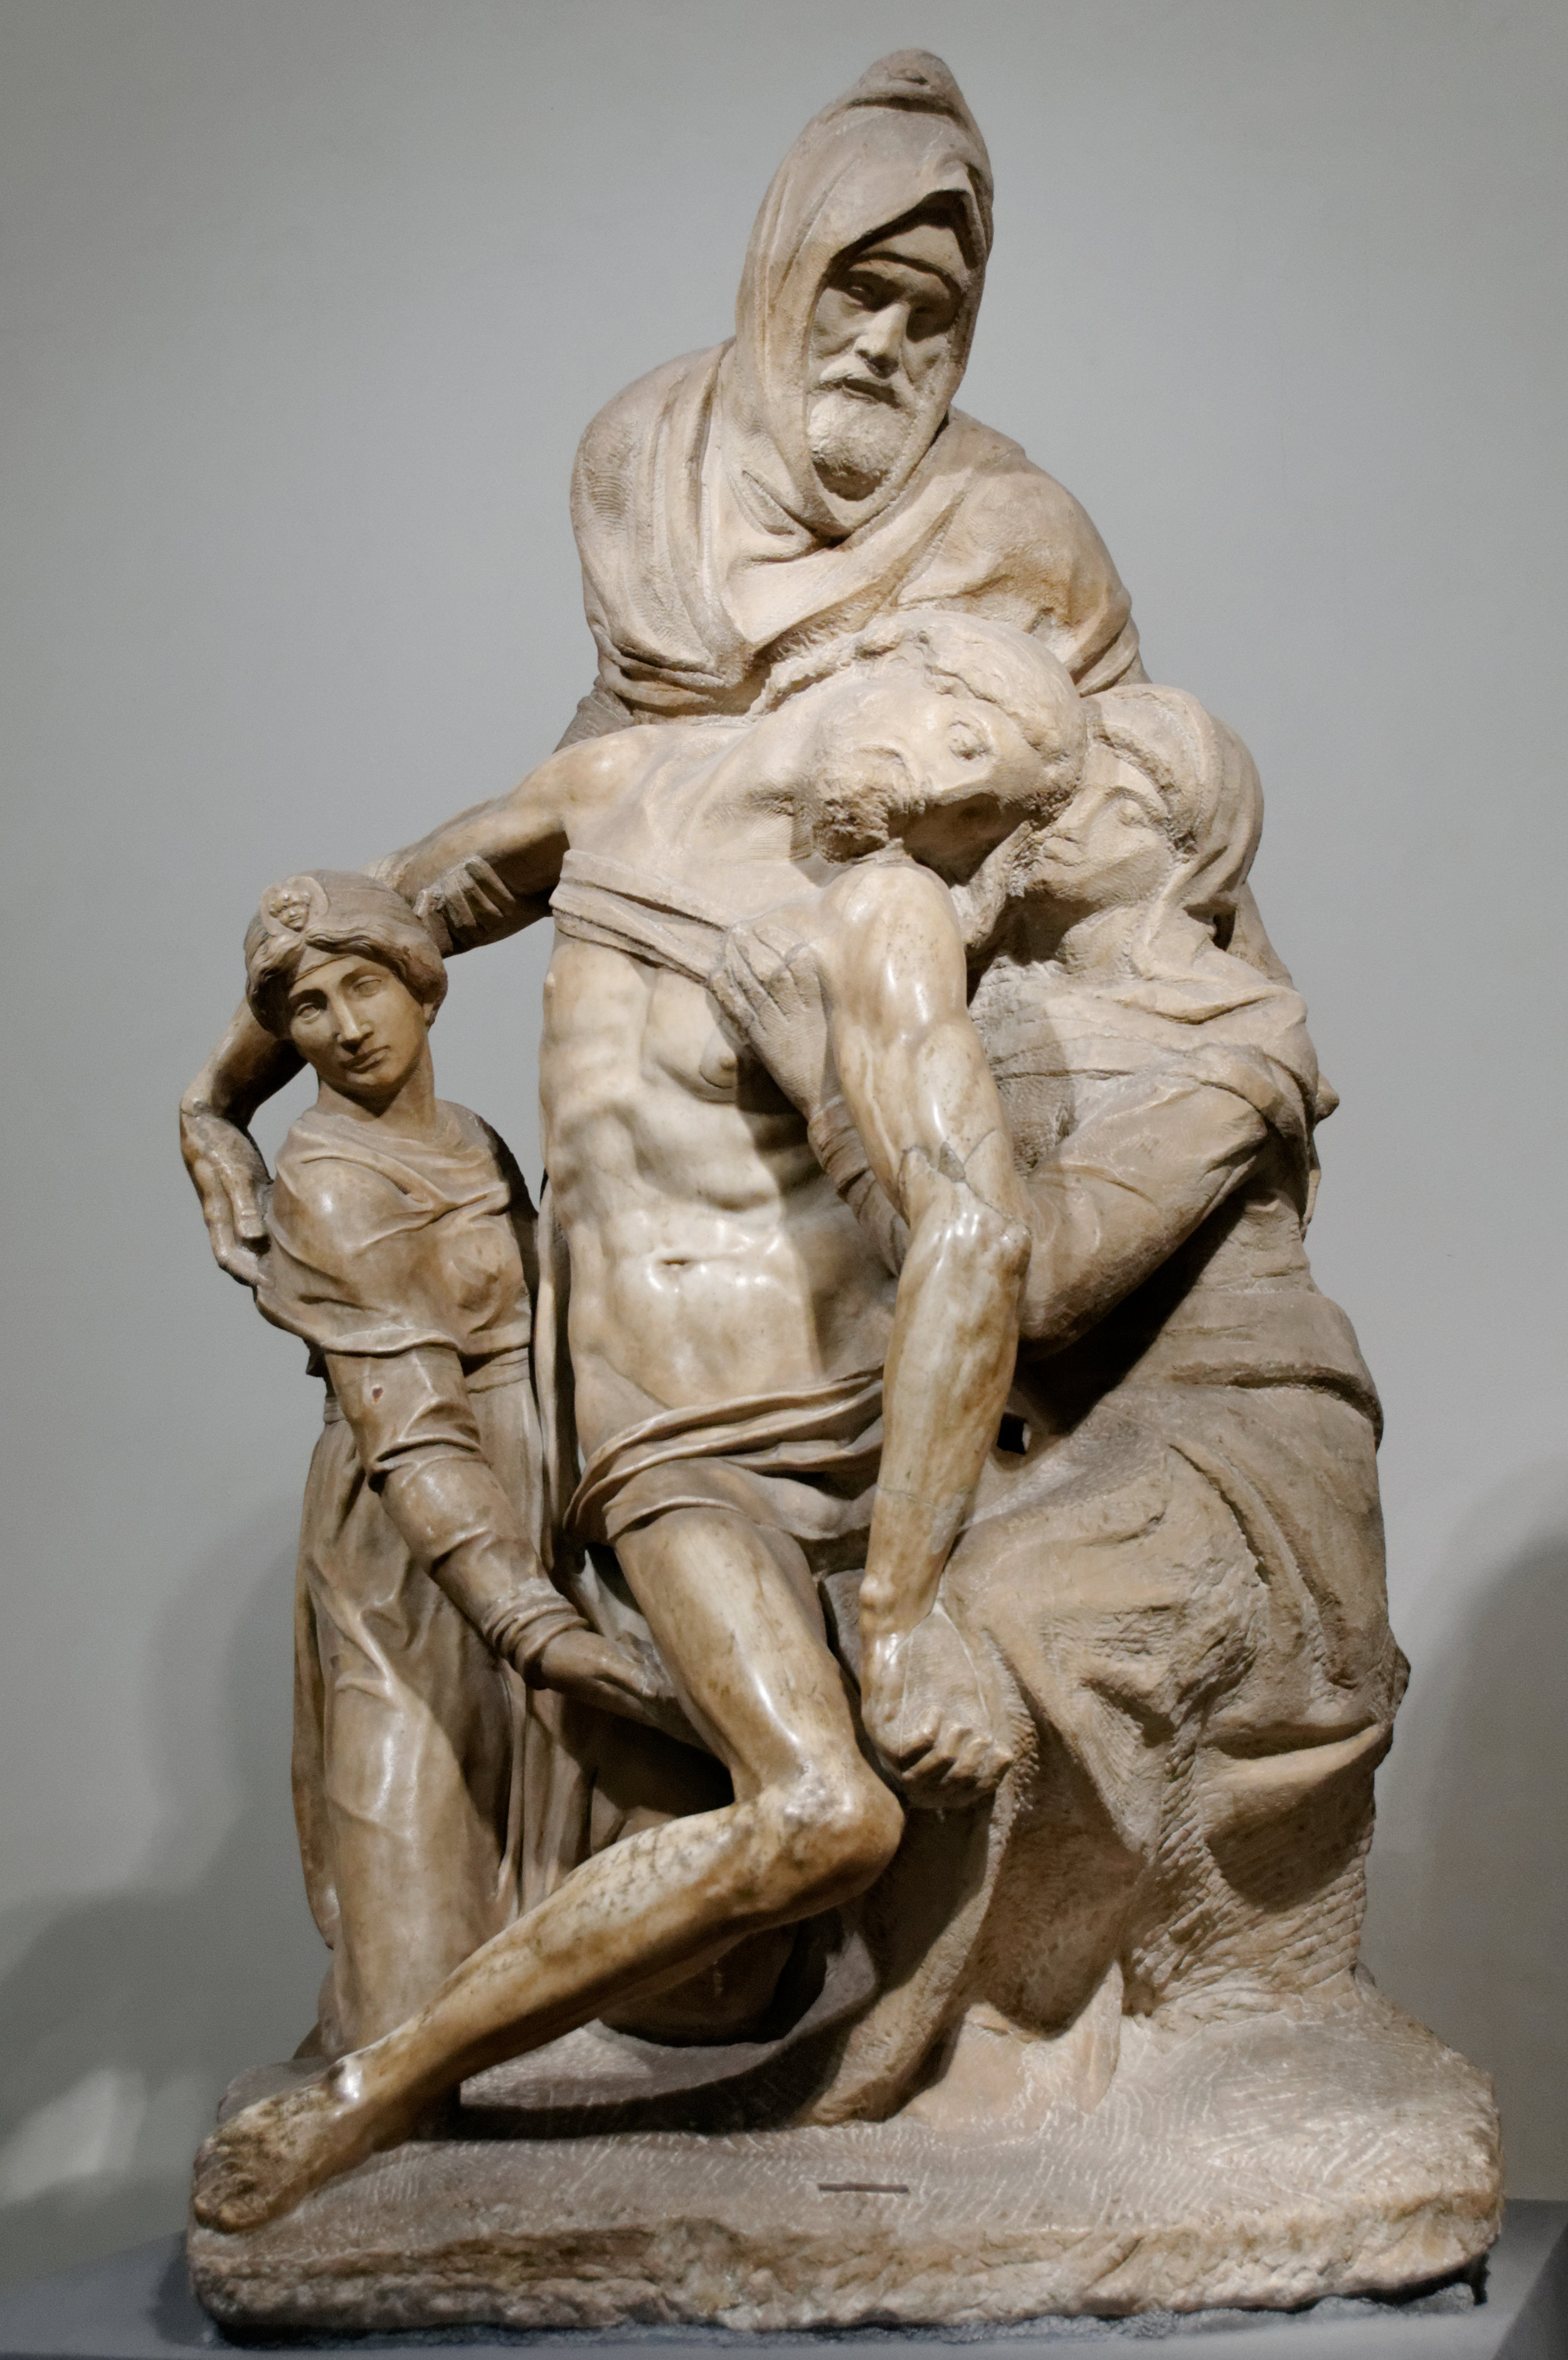 Michelangelo,  The Deposition (The Florentine Pieta),  1547-55, marble, Museo dell'Opera del Duomo, Florence